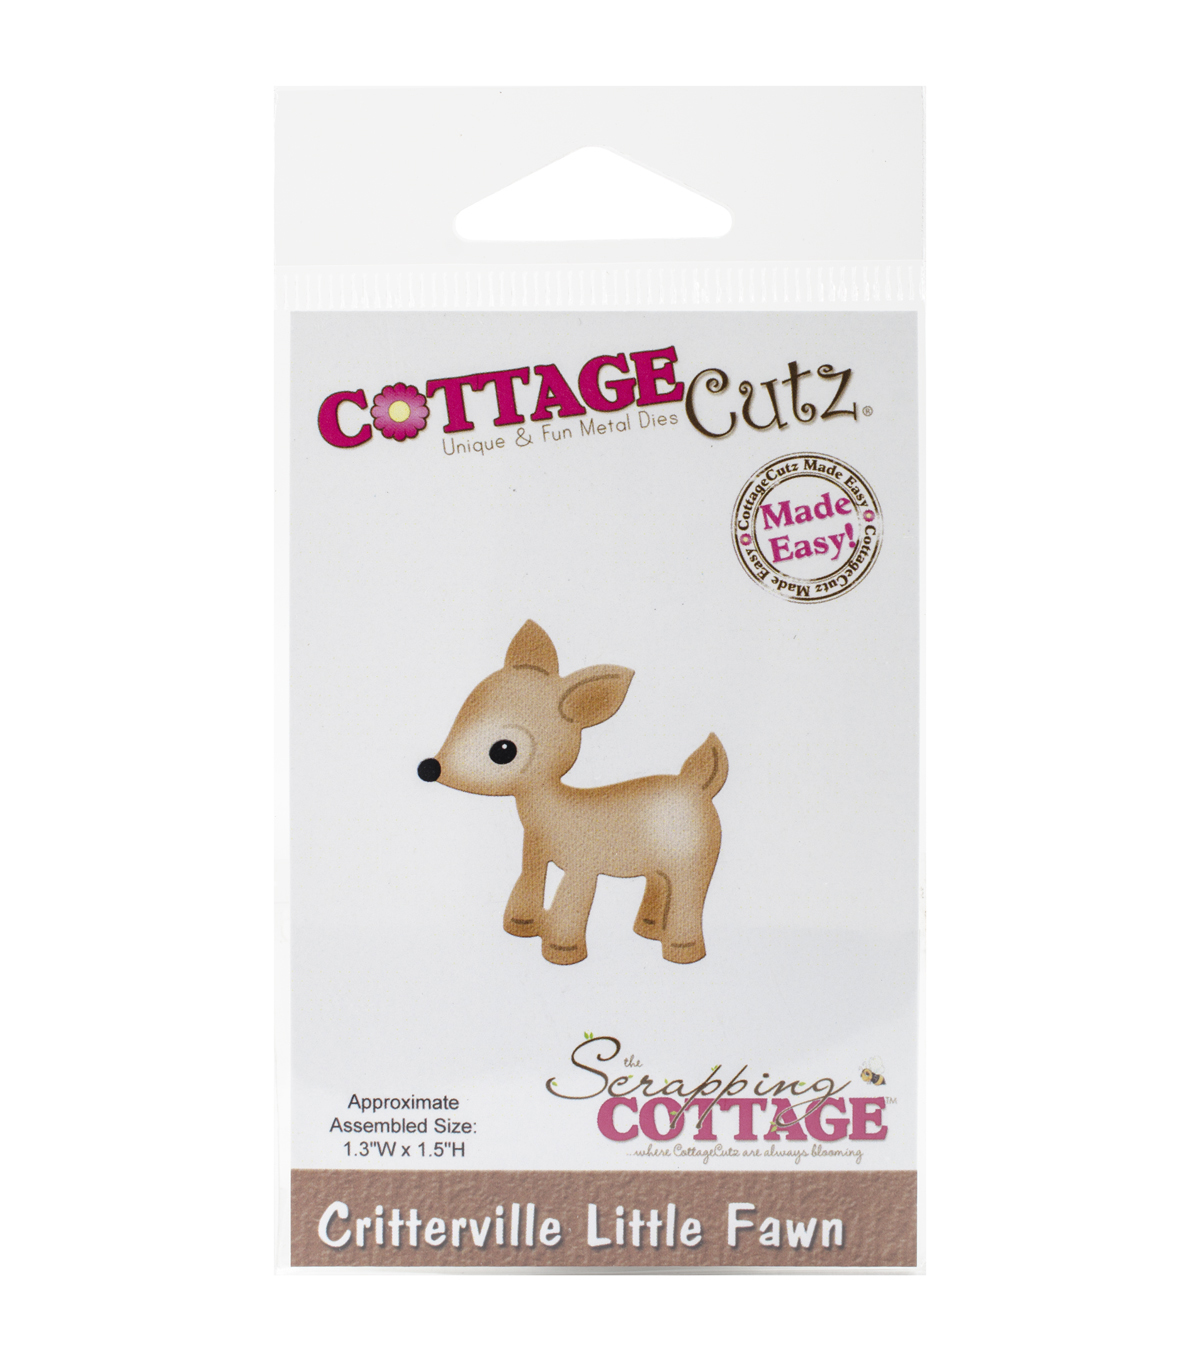 CottageCutz Critterville Little Fawn Die